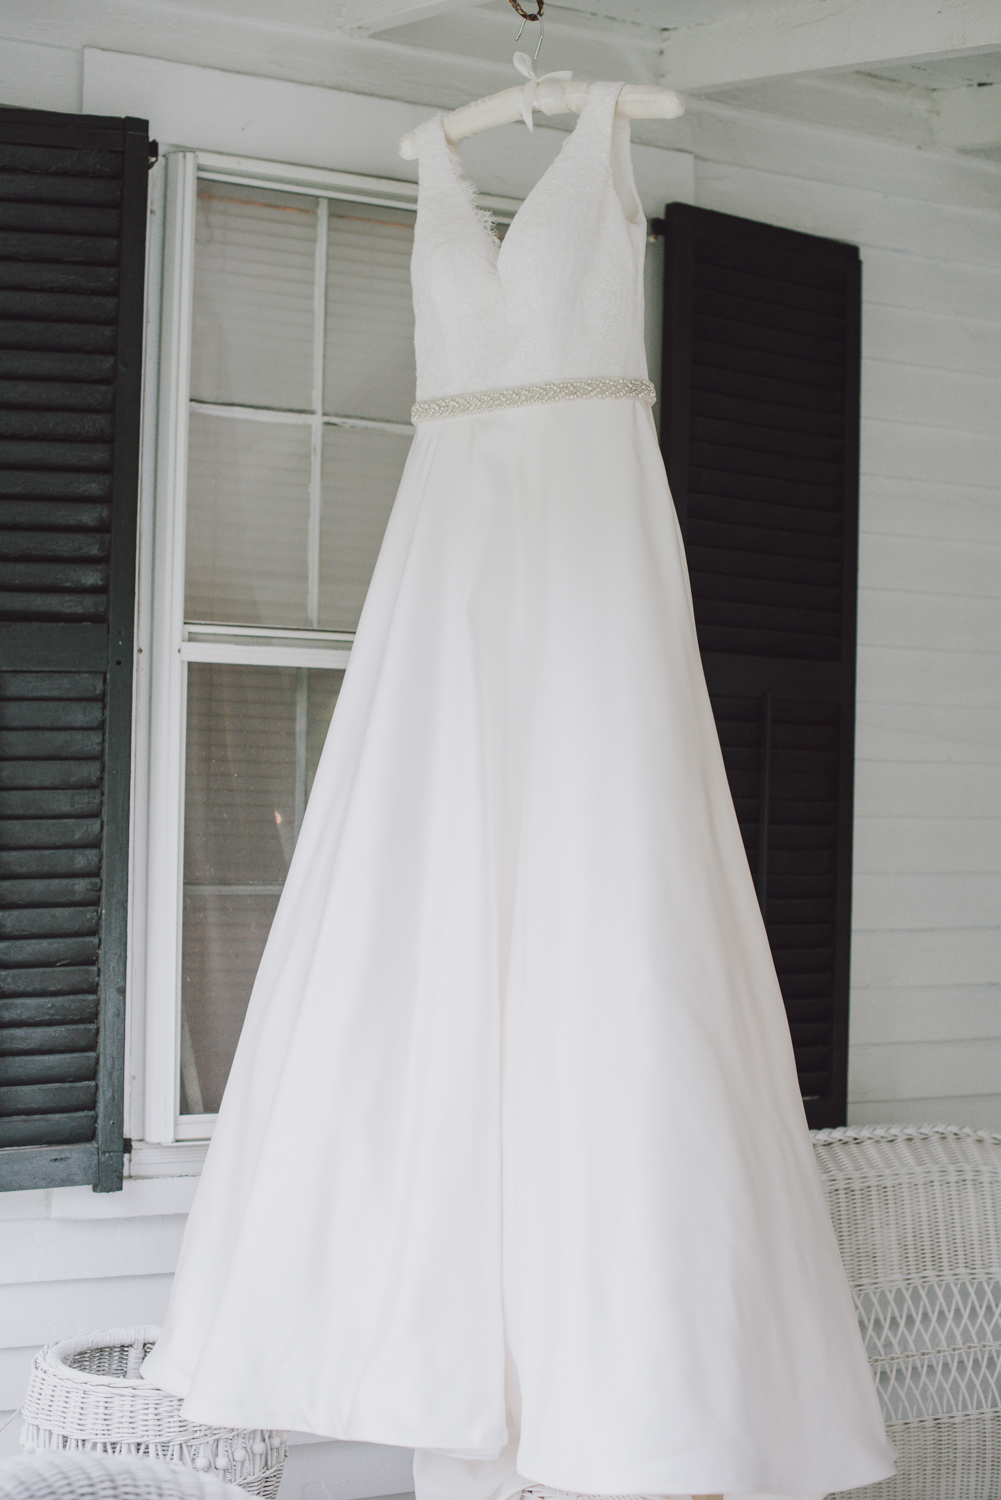 maureen_evan_wedding_dress_marthas_vineyard-8112.jpg